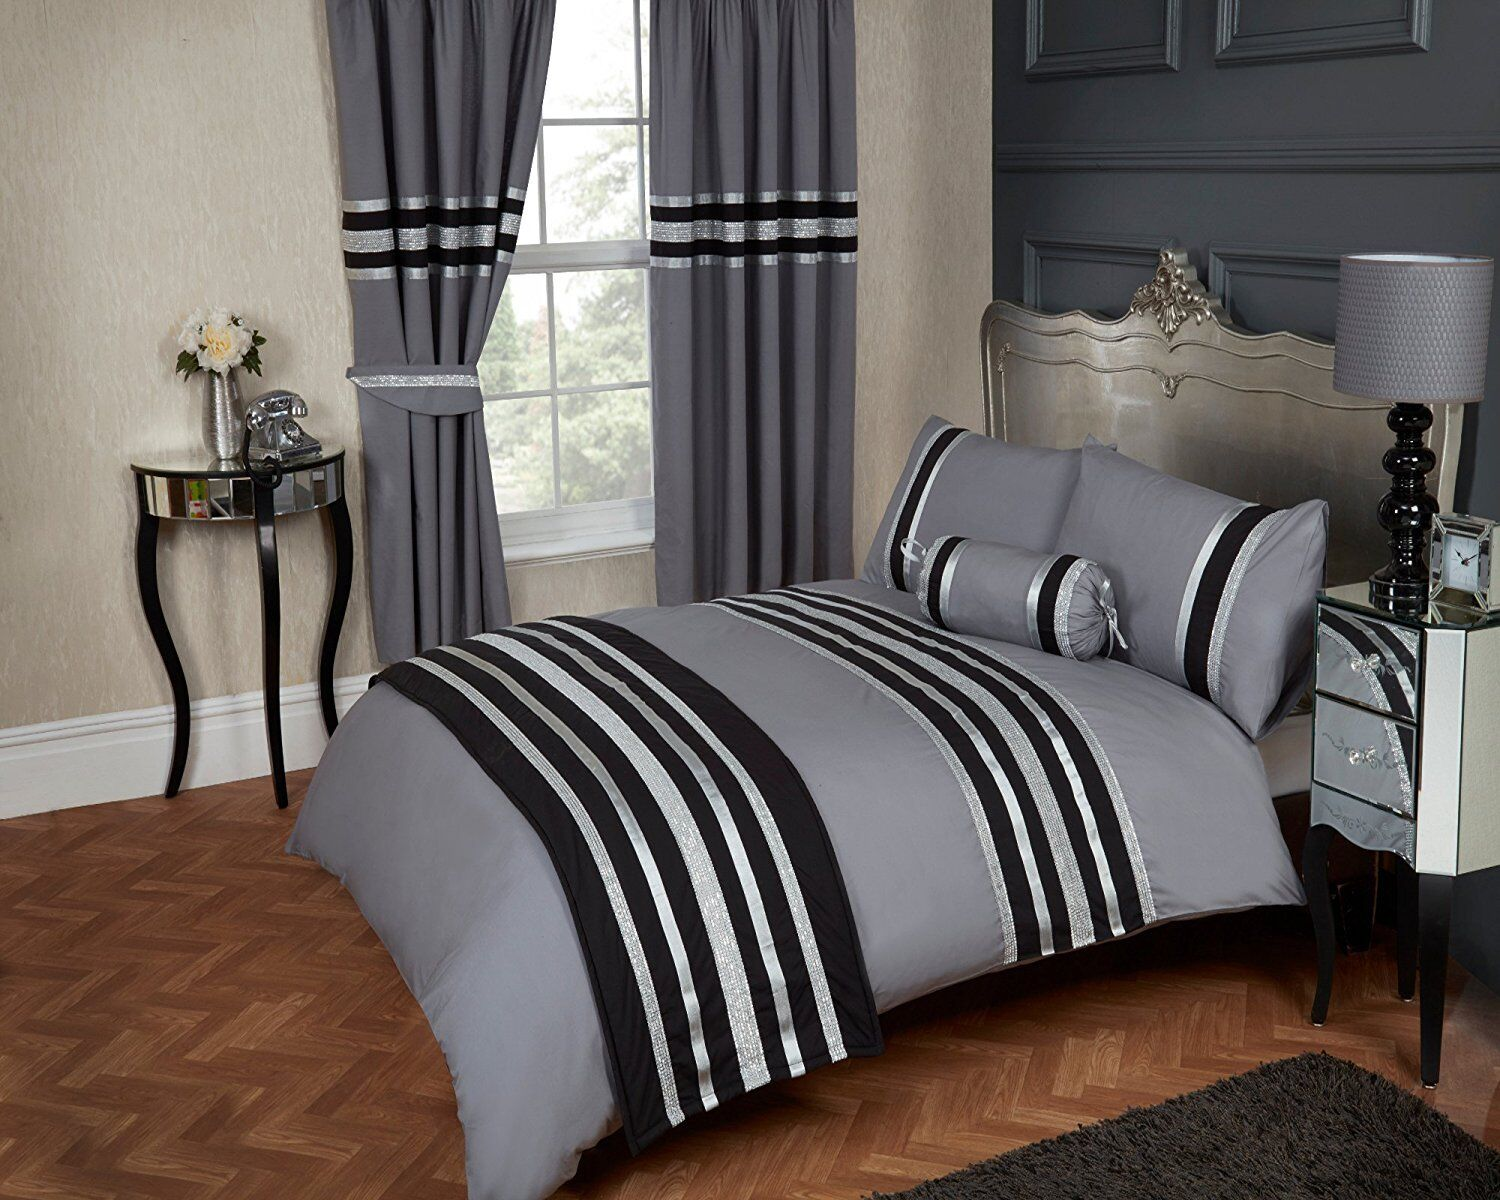 EMPEROR SIZE DUVET COVER GLITZ CHARCOAL MIX GREY 200 THREAD COUNT 100% COTTON